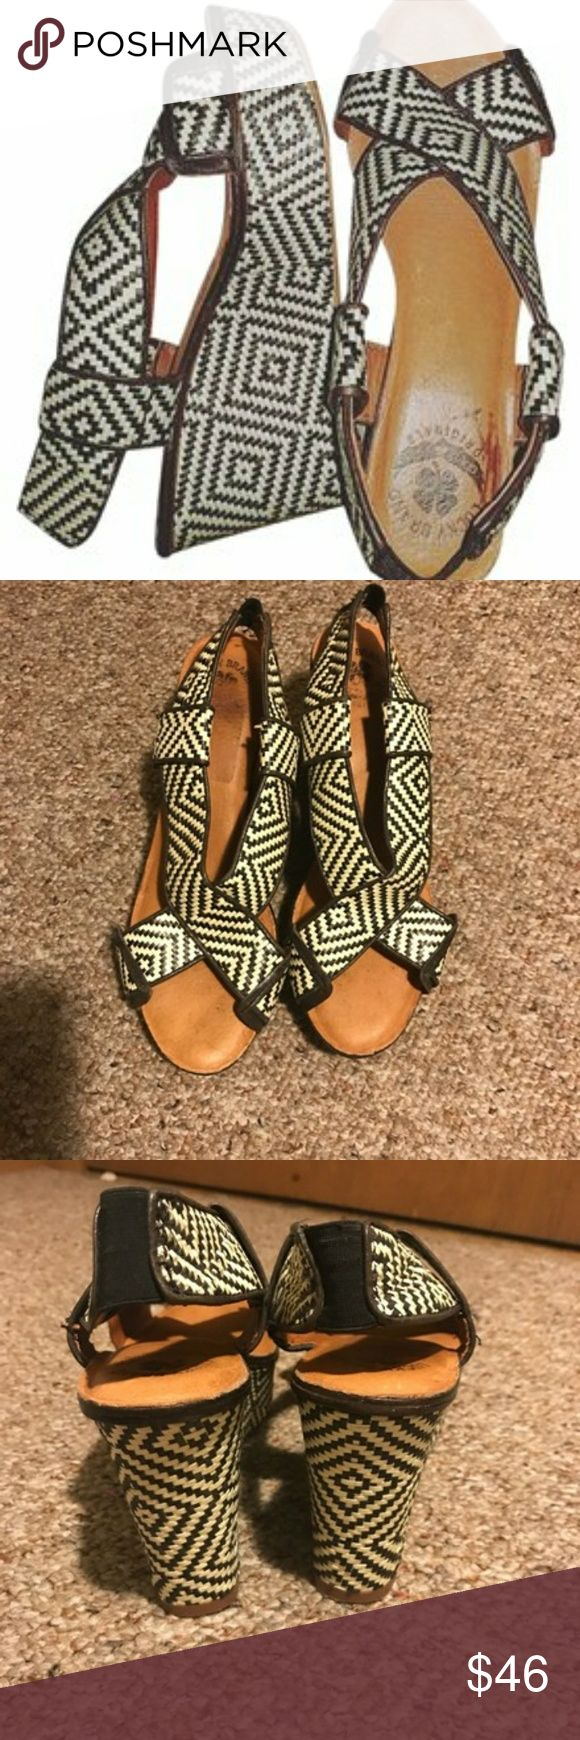 Lucky brand woven black and cream Wedge sandles 7 Gorgeous weaved patterned wedges by lucky brand in black and white. Great for spring summer or fall. Can be worn casually or dressed up! Super comfortable. Very gently used. Size 7 Lucky Brand Shoes Sandals